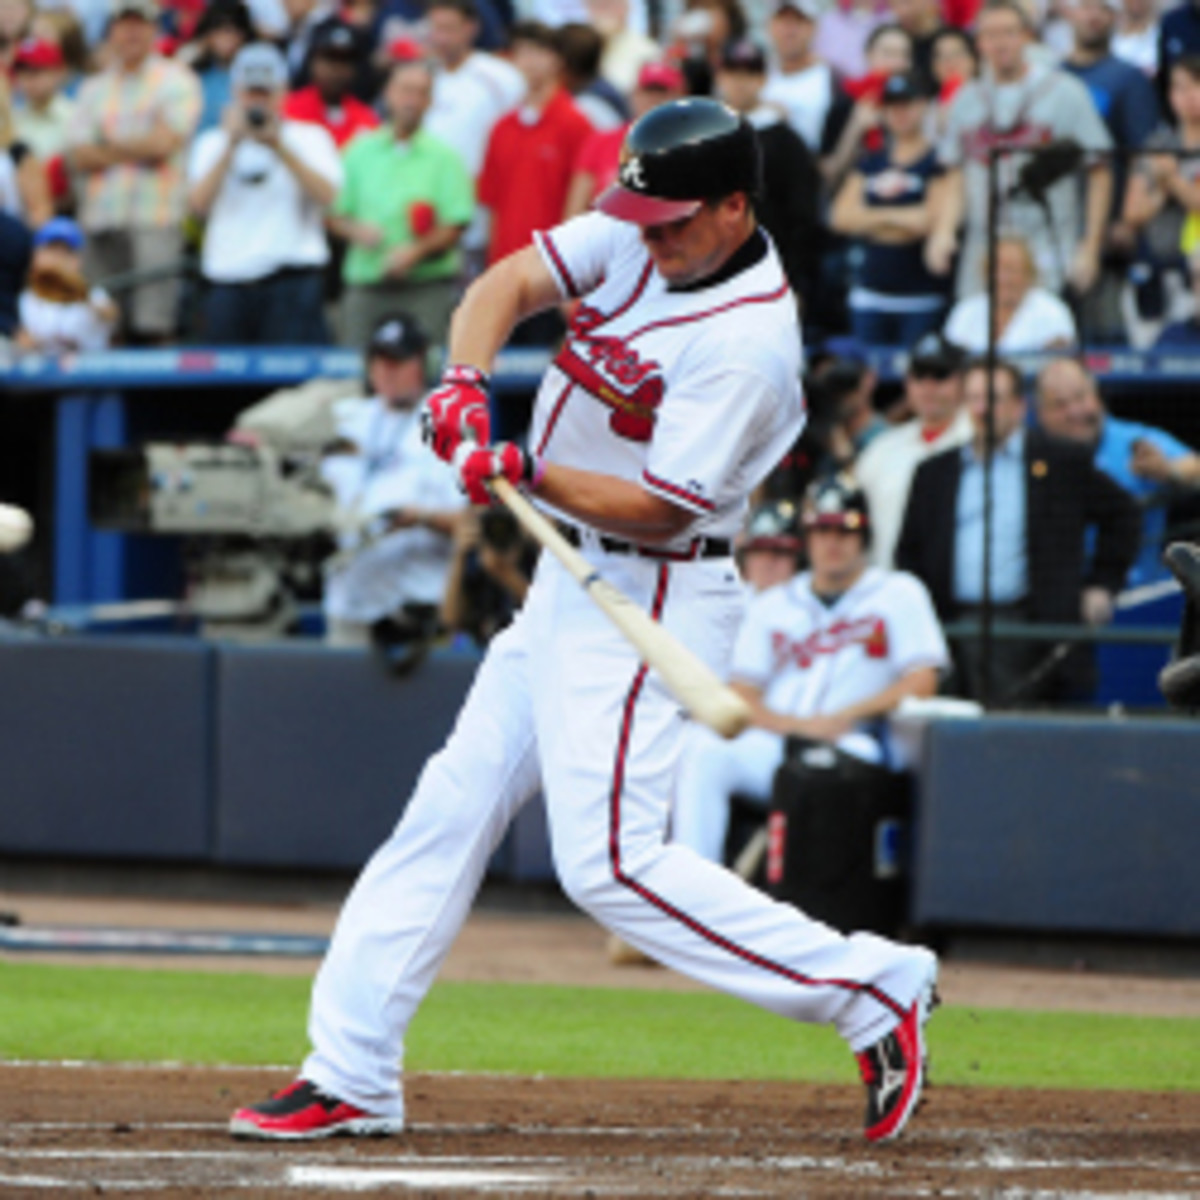 The Braves will induct Chipper Jones into their Hall of Fame and retire his jersey on June 28. (Scott Cunningham/Getty Images)